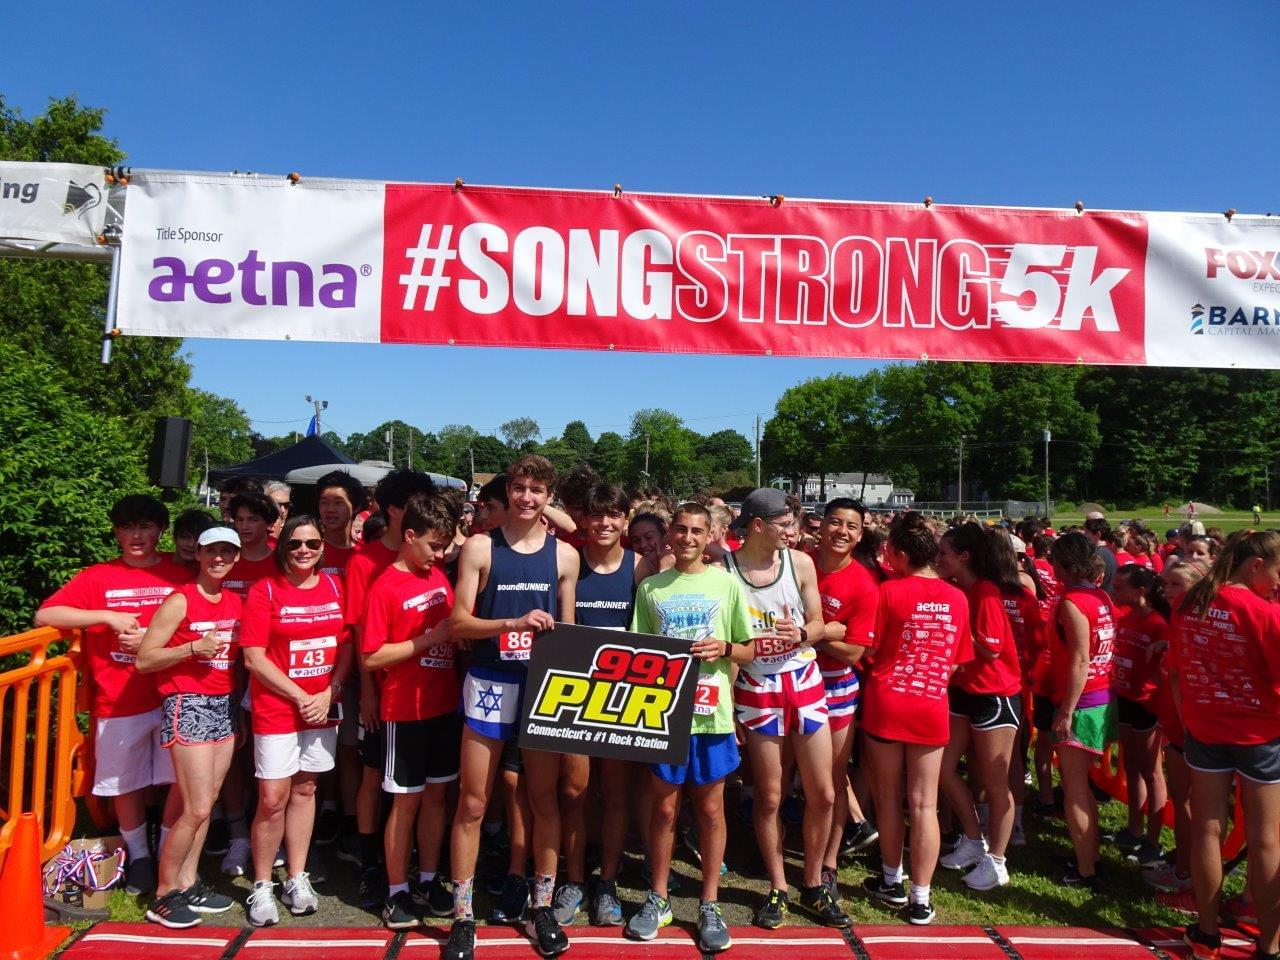 Song Strong 5K in Guilford 6/8/19